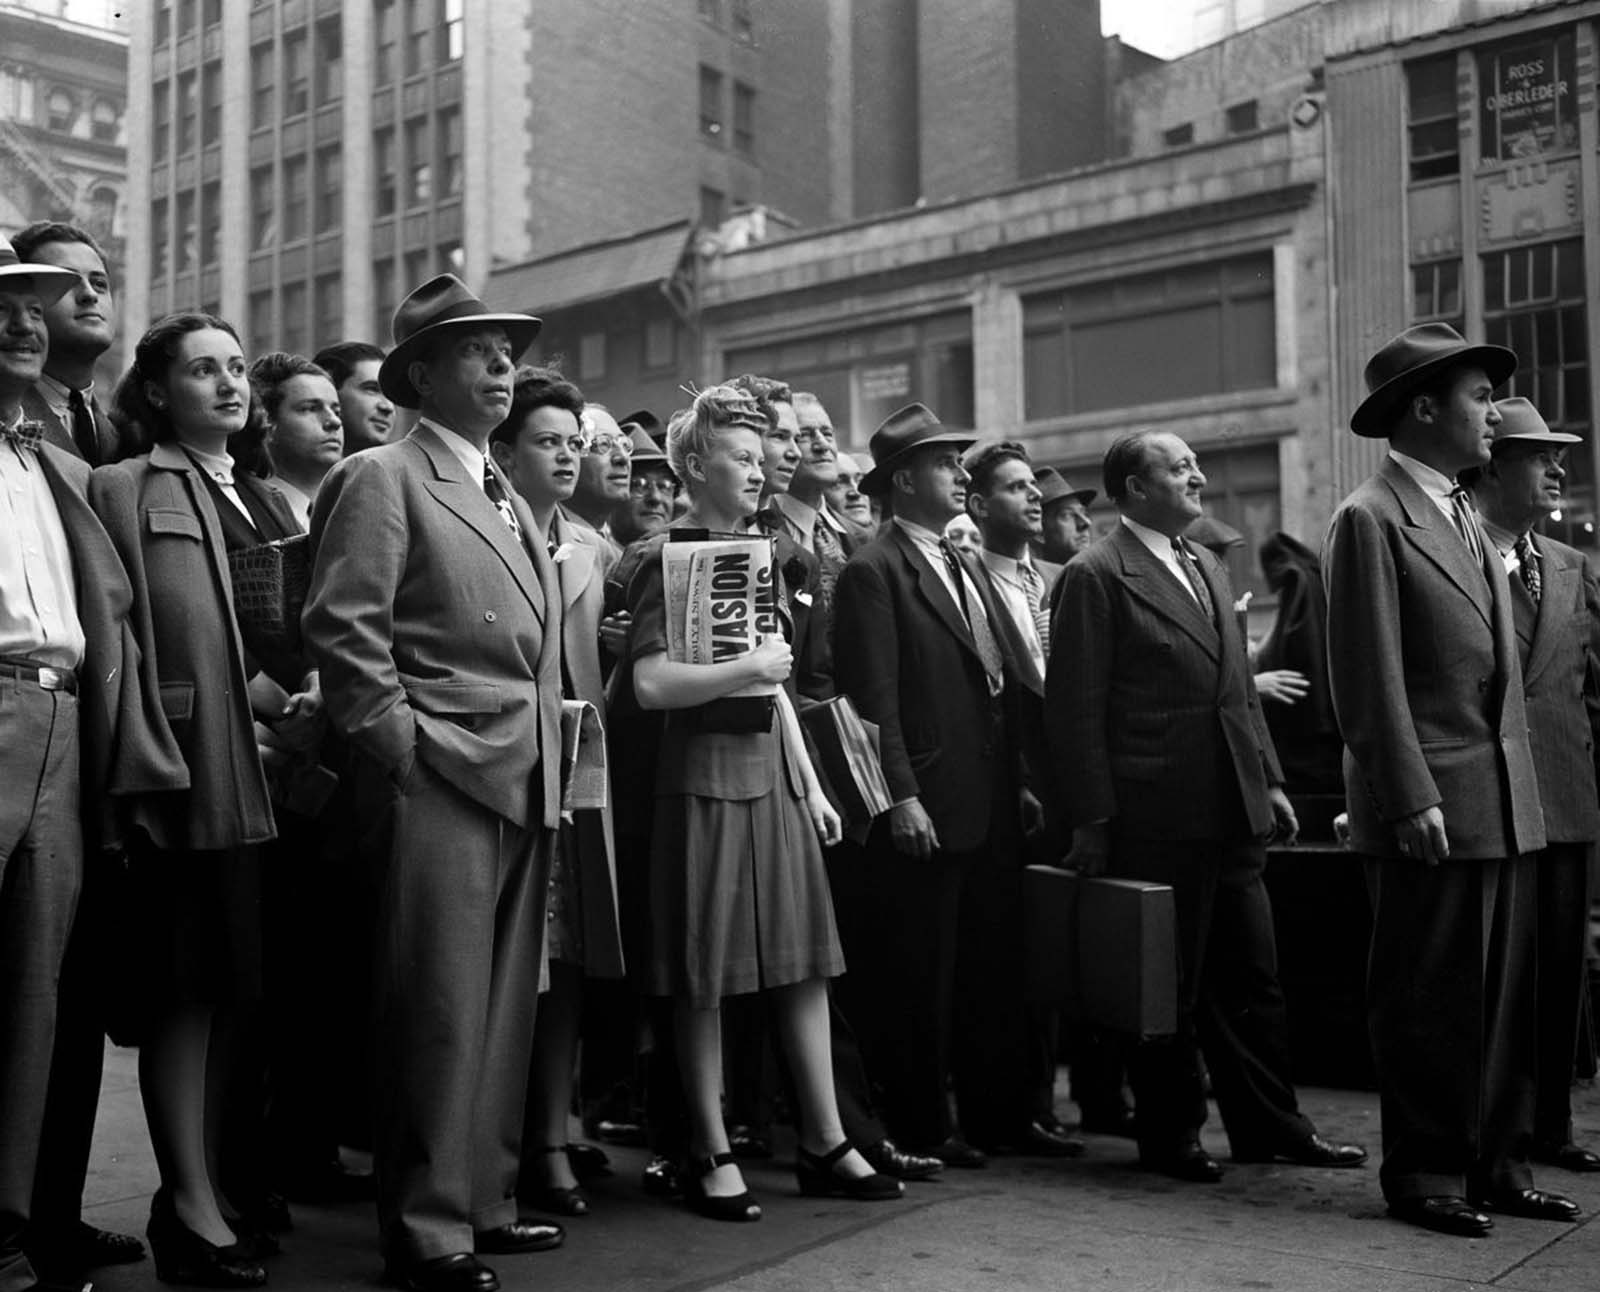 People gather in Times Square to watch the news ticker on the New York Times building.